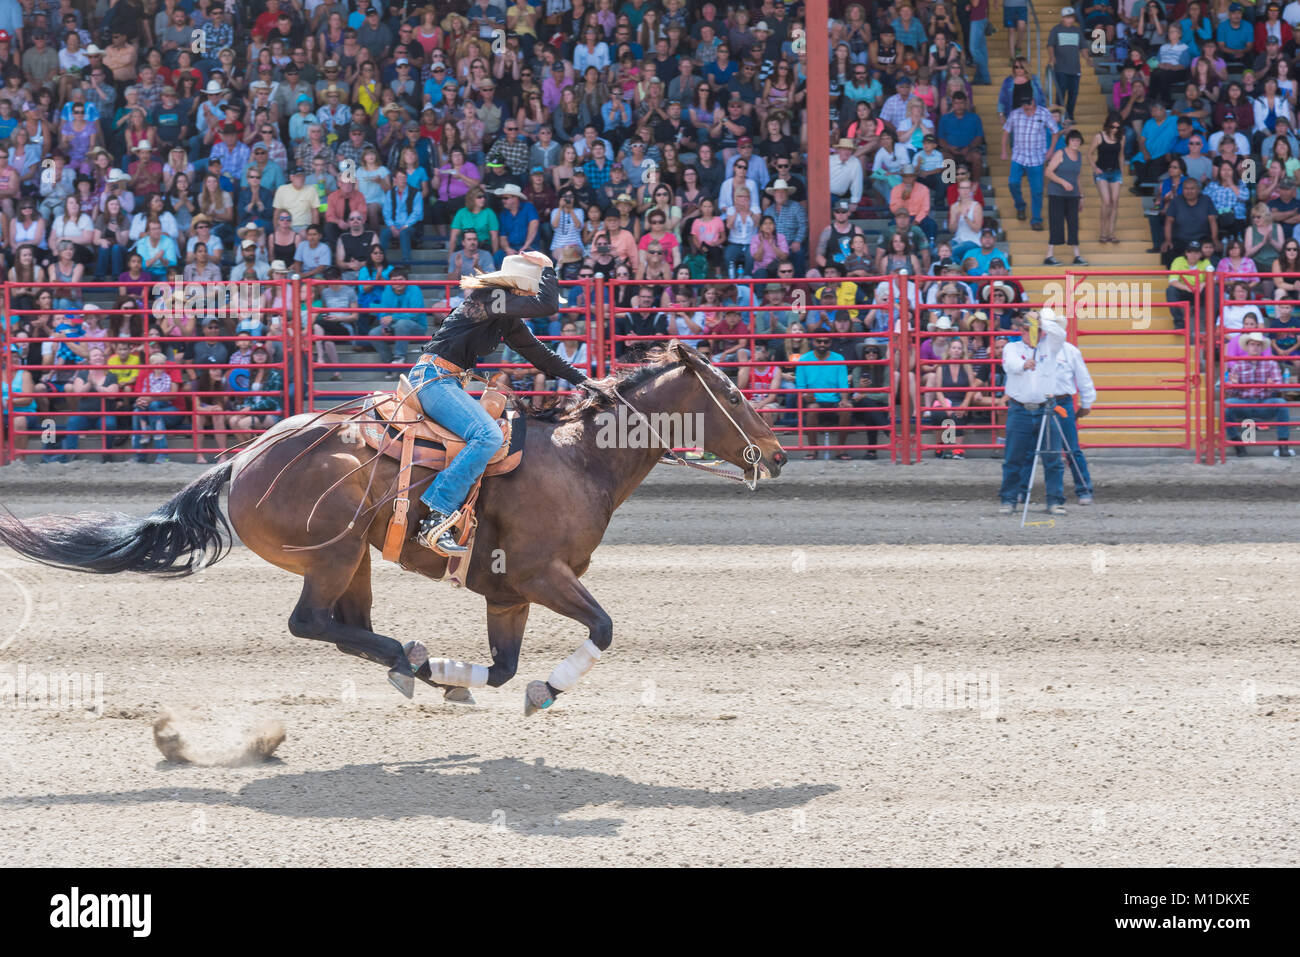 Horse and rider race to the finish line at a barrel racing competition during the 90th Williams Lake Stampede. - Stock Image